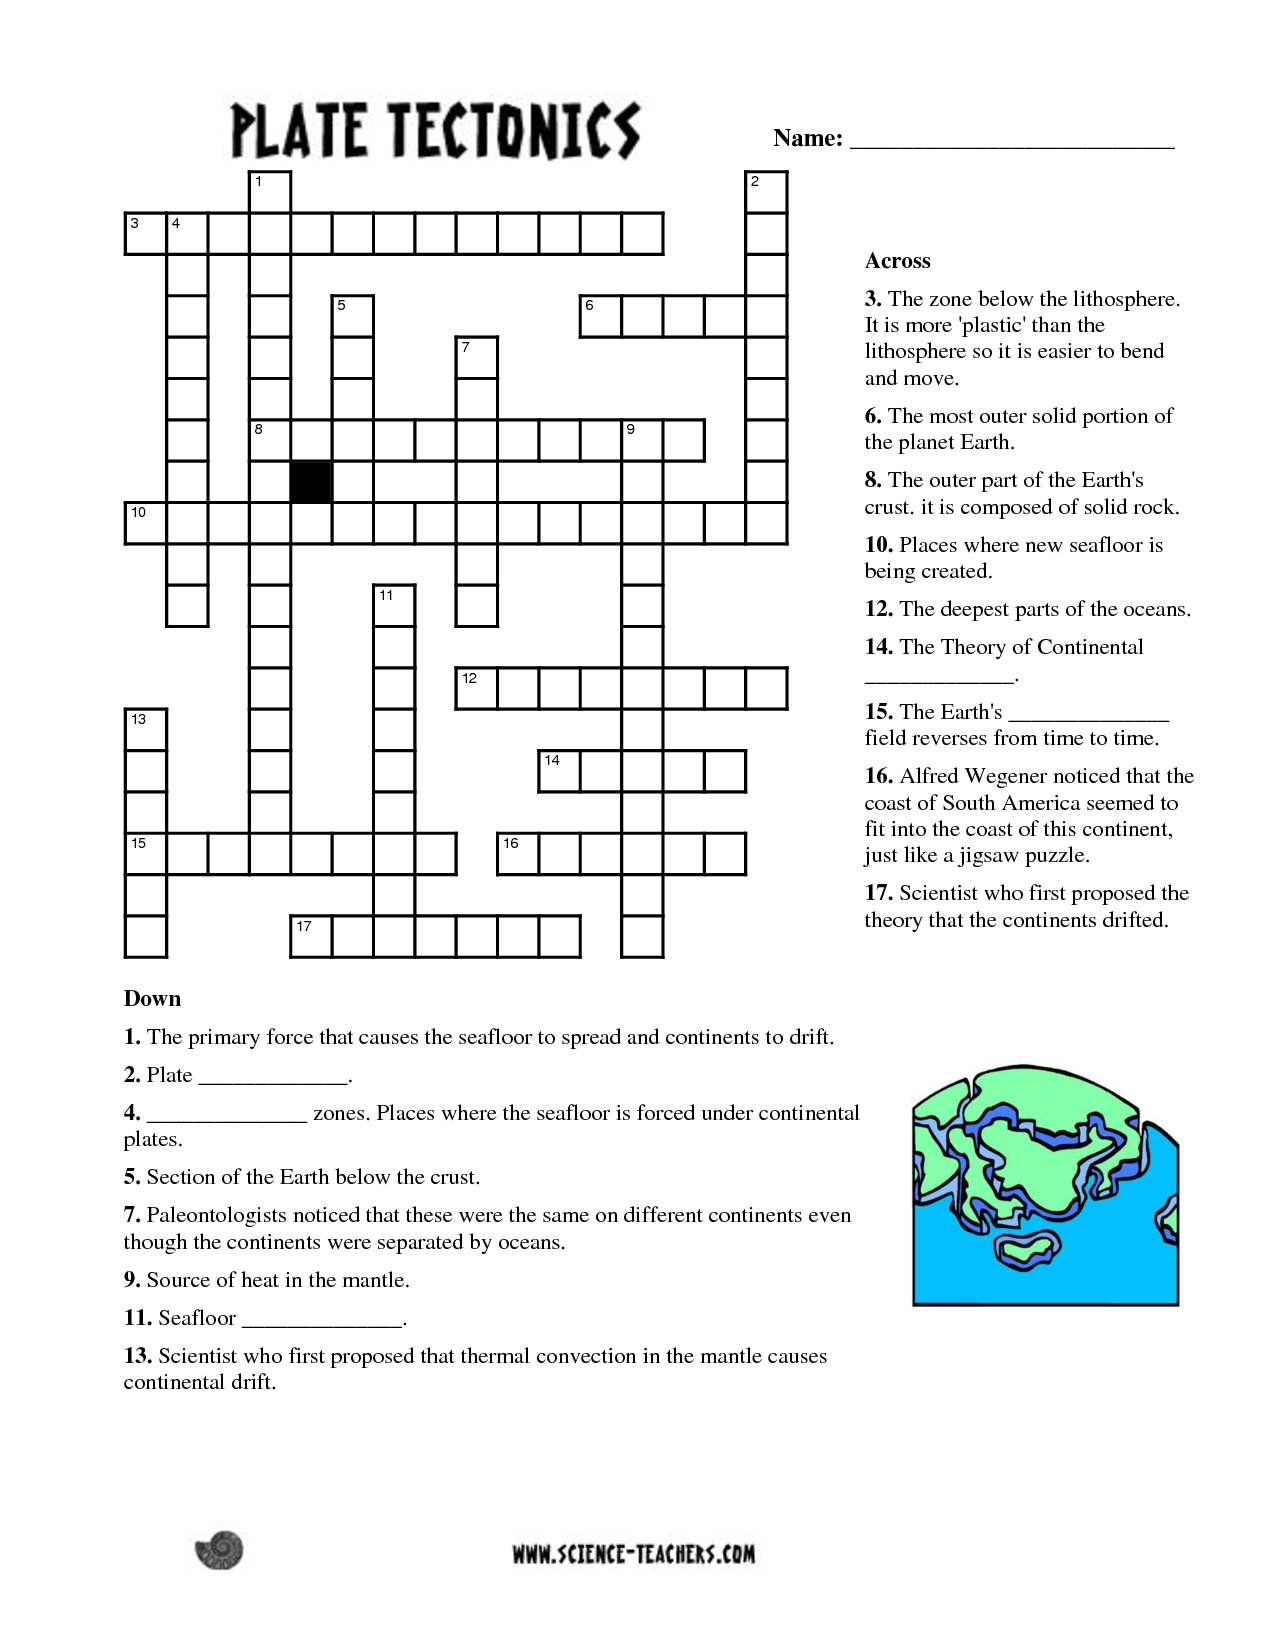 Worksheets Planet Earth Worksheets planets crossword puzzle worksheet pics about space fun science space